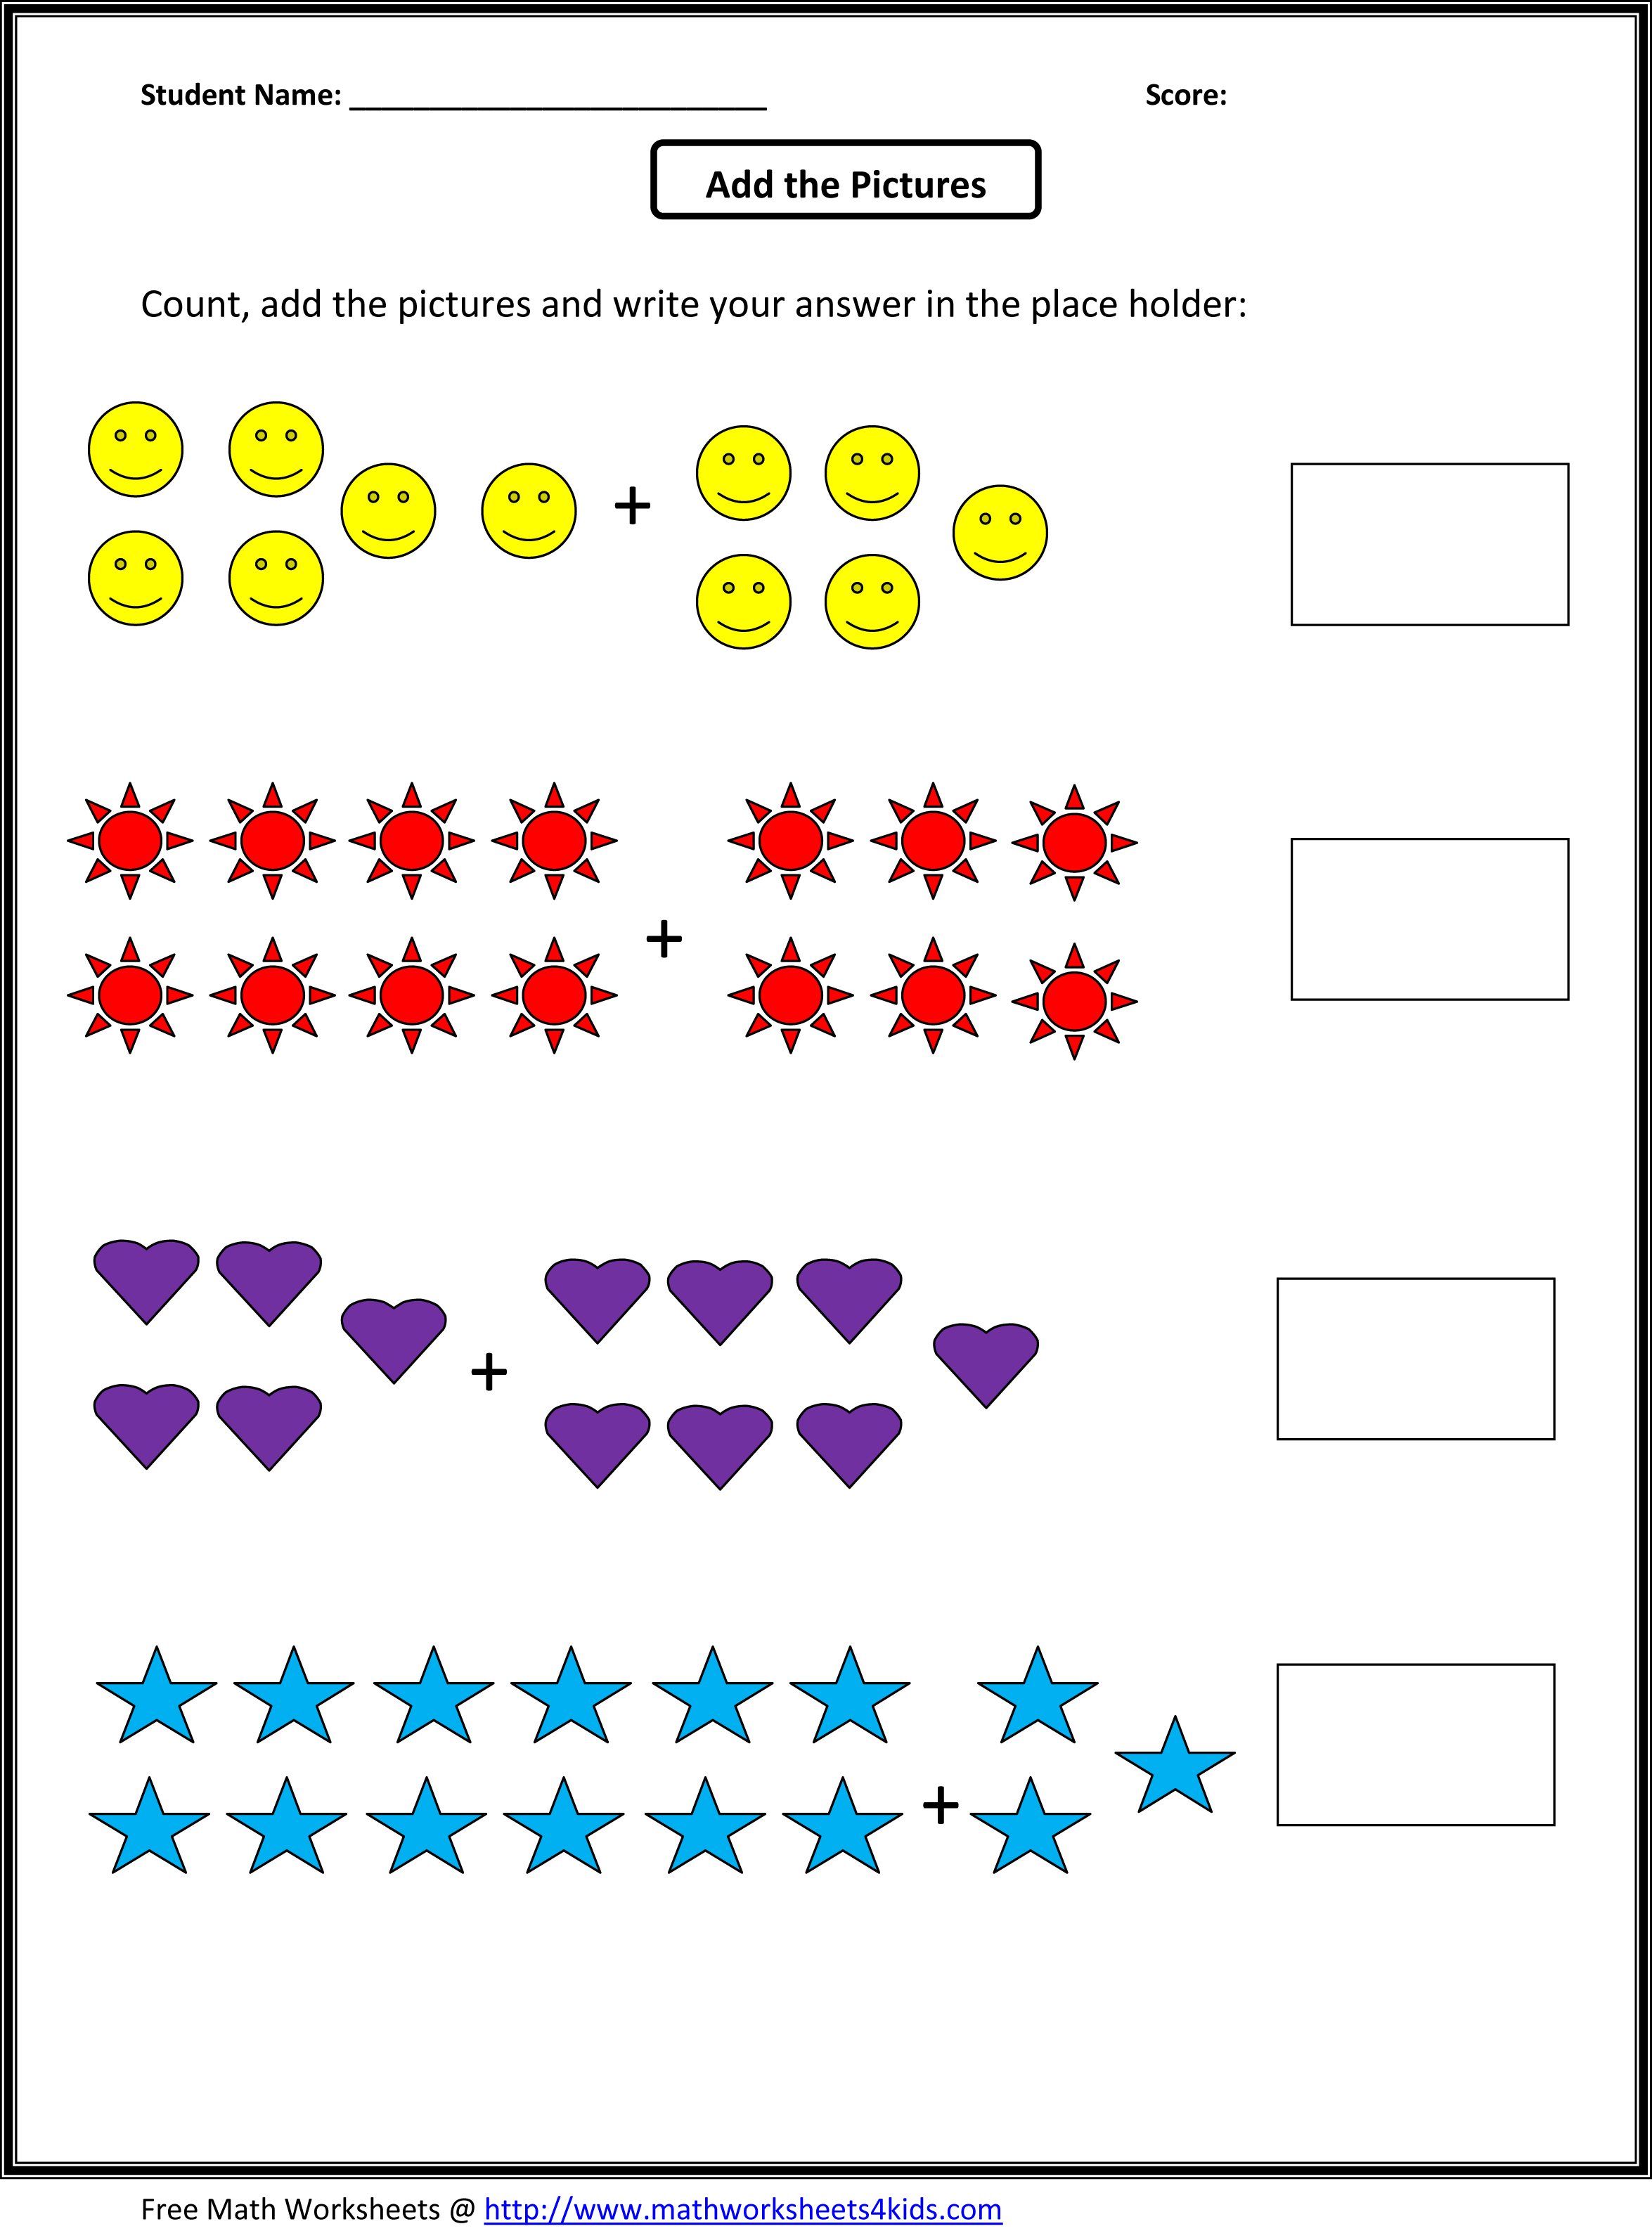 Proatmealus  Winning Grade  Maths Worksheet  Reocurent With Lovable Math Worksheets For St Grade Free  Reocurent With Agreeable Word Form Worksheets Th Grade Also Simple Algebra Worksheets Ks In Addition How To Lock An Excel Worksheet And Grammar Worksheets Year  As Well As Addition And Subtraction Of Negative Numbers Worksheet Additionally Calorie Count Worksheet From Reocurentcom With Proatmealus  Lovable Grade  Maths Worksheet  Reocurent With Agreeable Math Worksheets For St Grade Free  Reocurent And Winning Word Form Worksheets Th Grade Also Simple Algebra Worksheets Ks In Addition How To Lock An Excel Worksheet From Reocurentcom